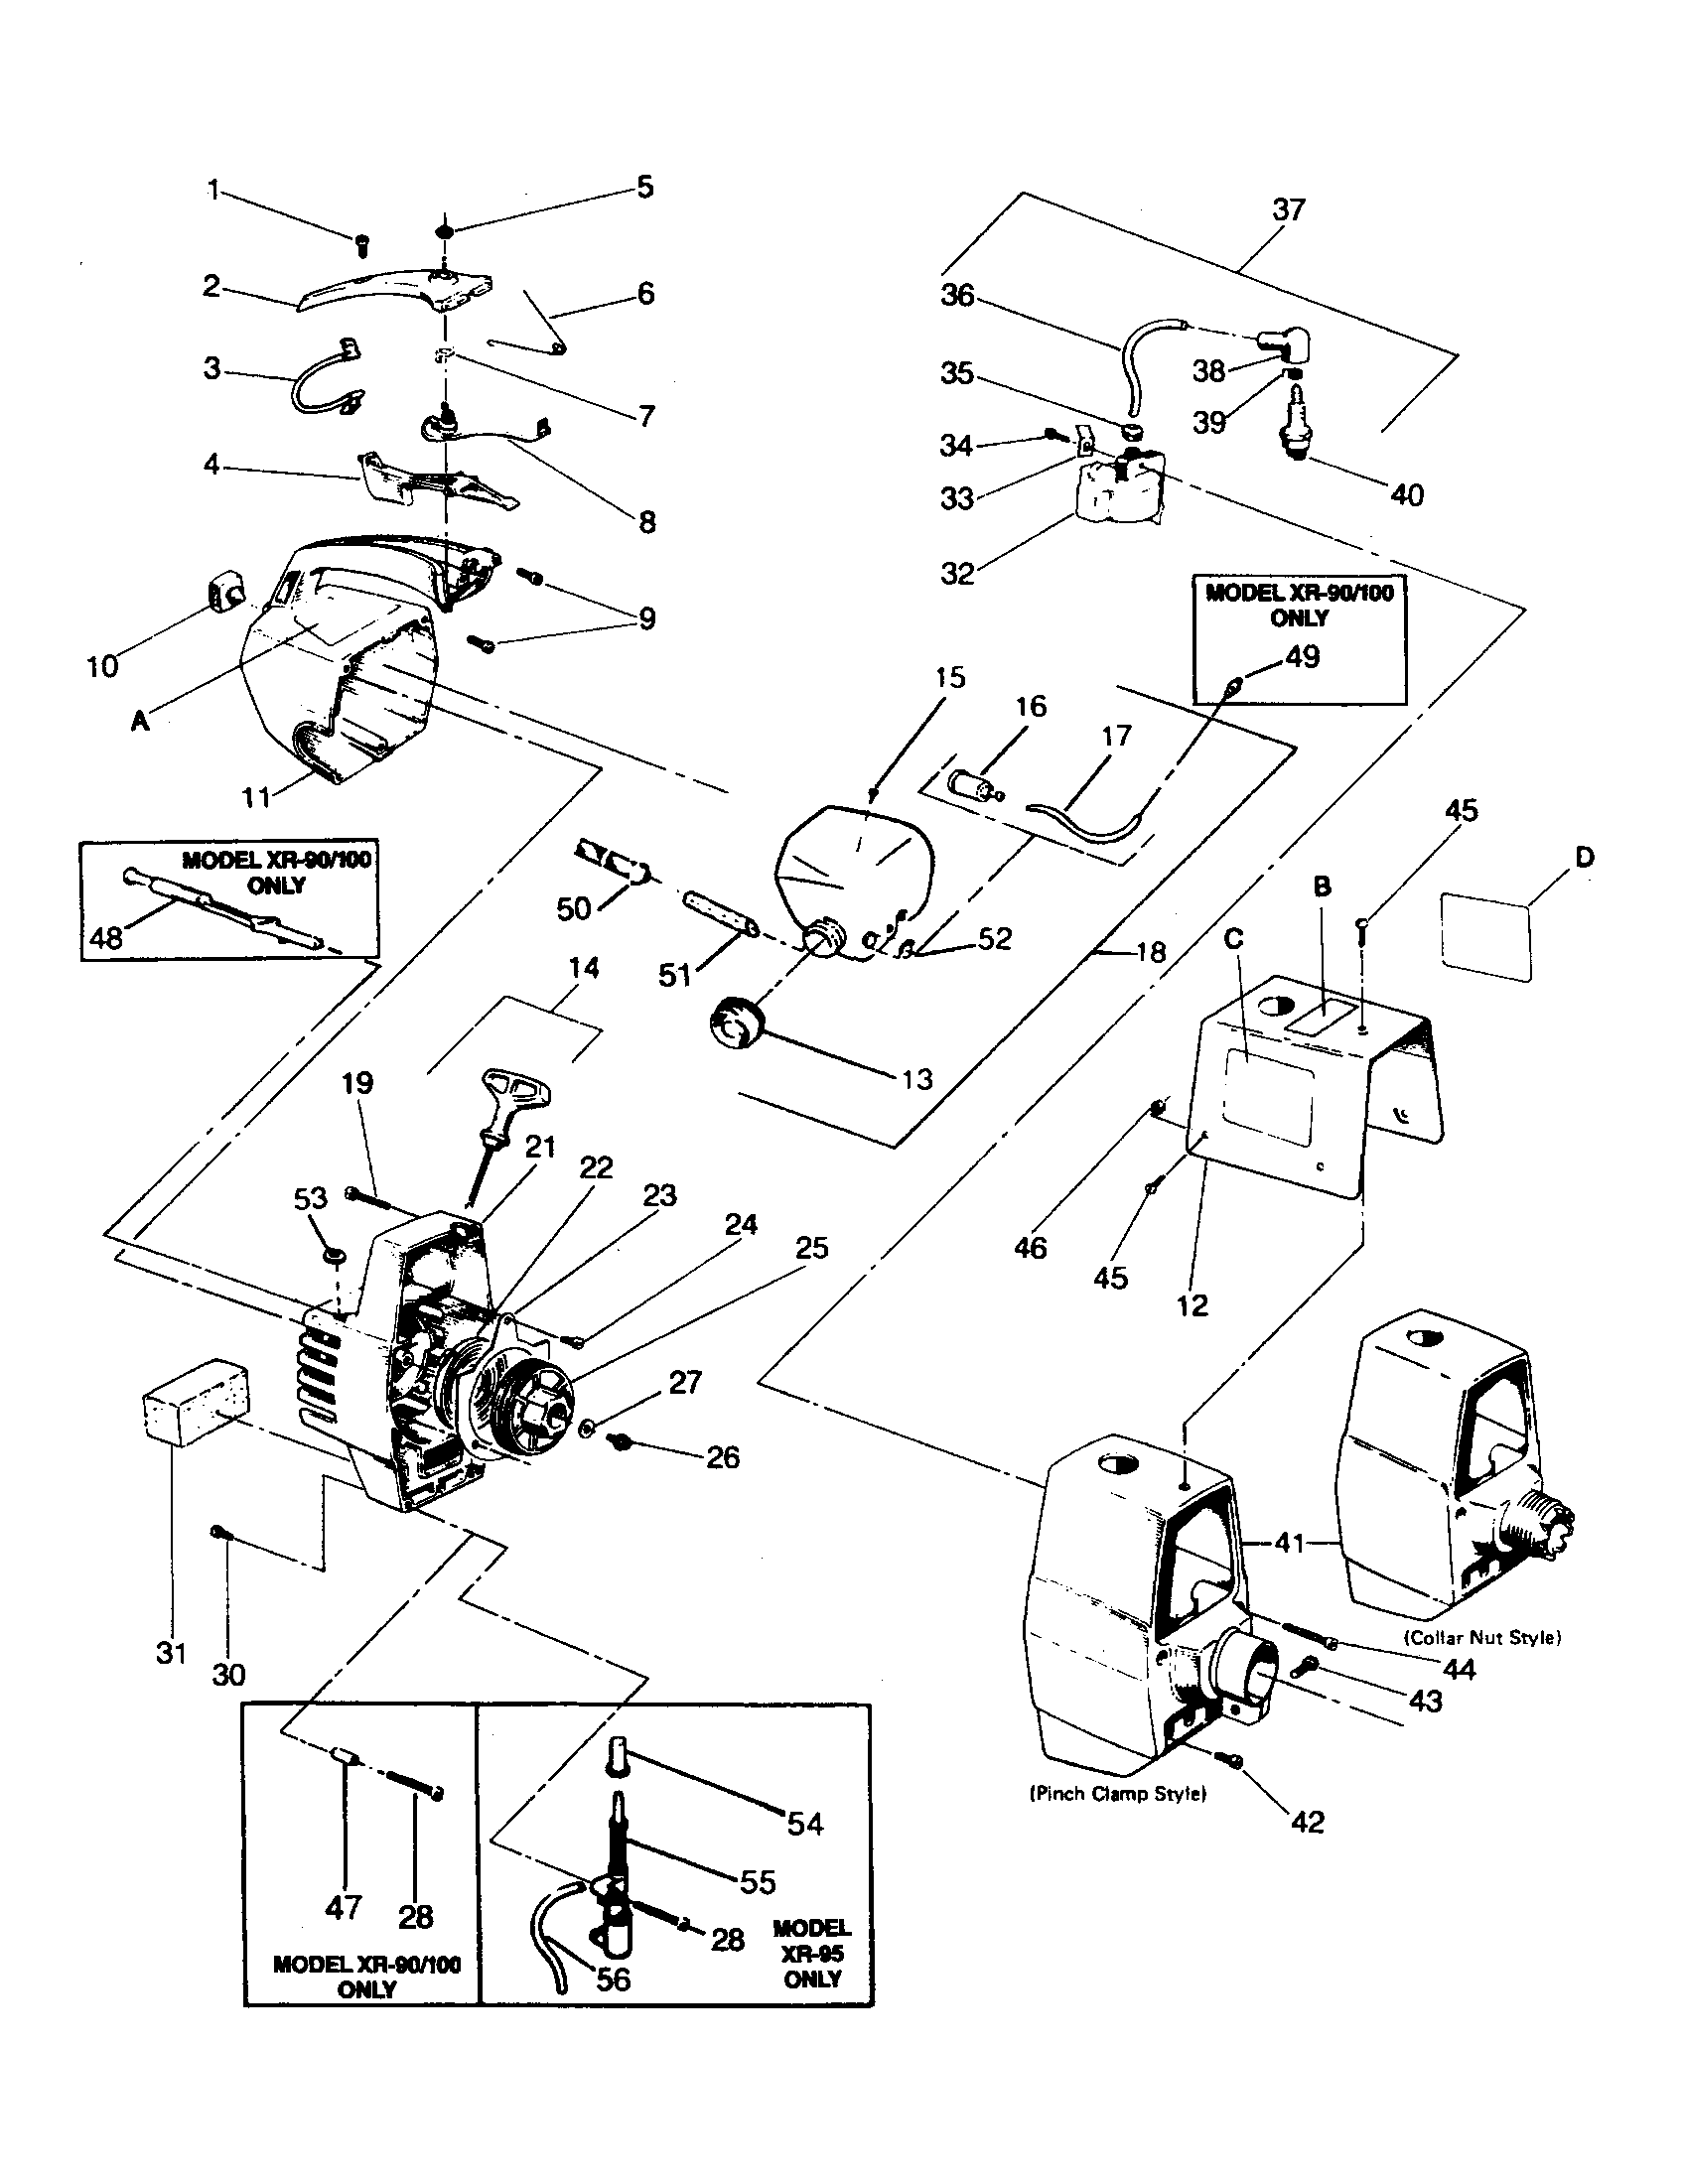 Weed Eater XR-90 starter and shroud diagram